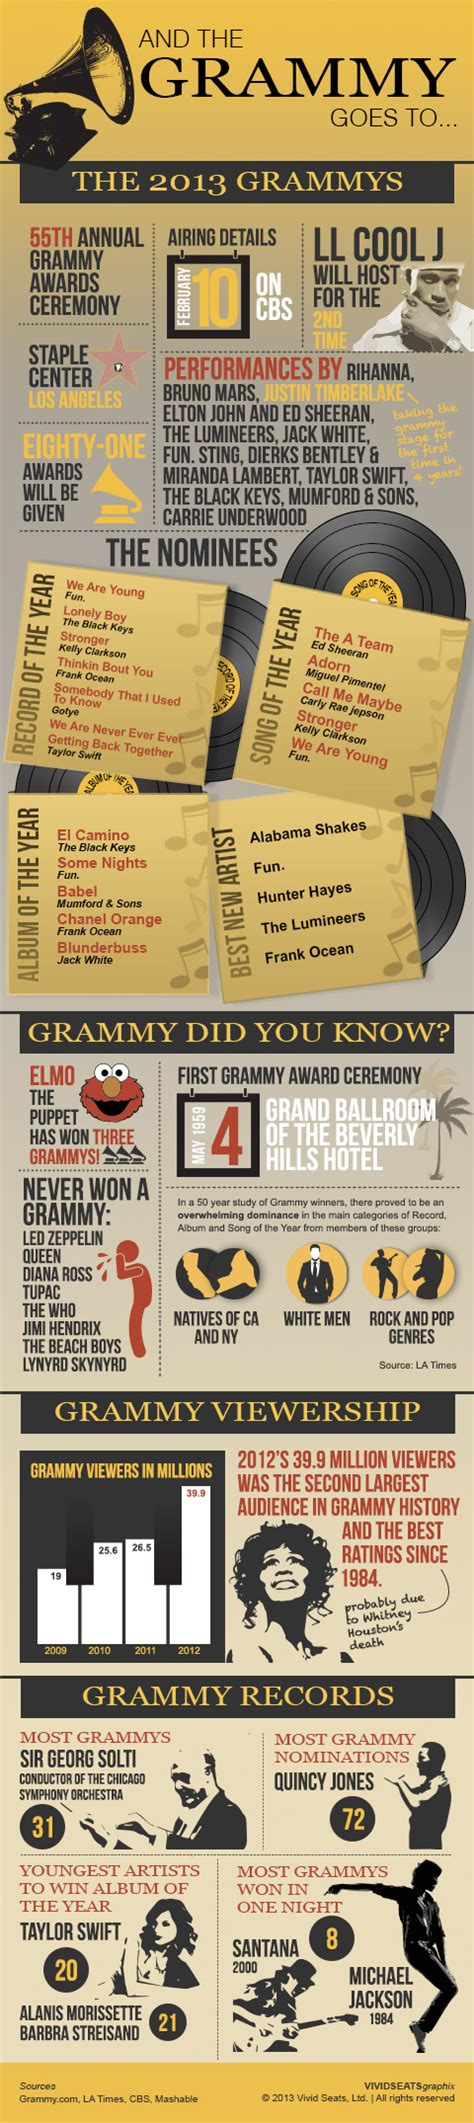 Grammy Fever Hits by Thinglink Users